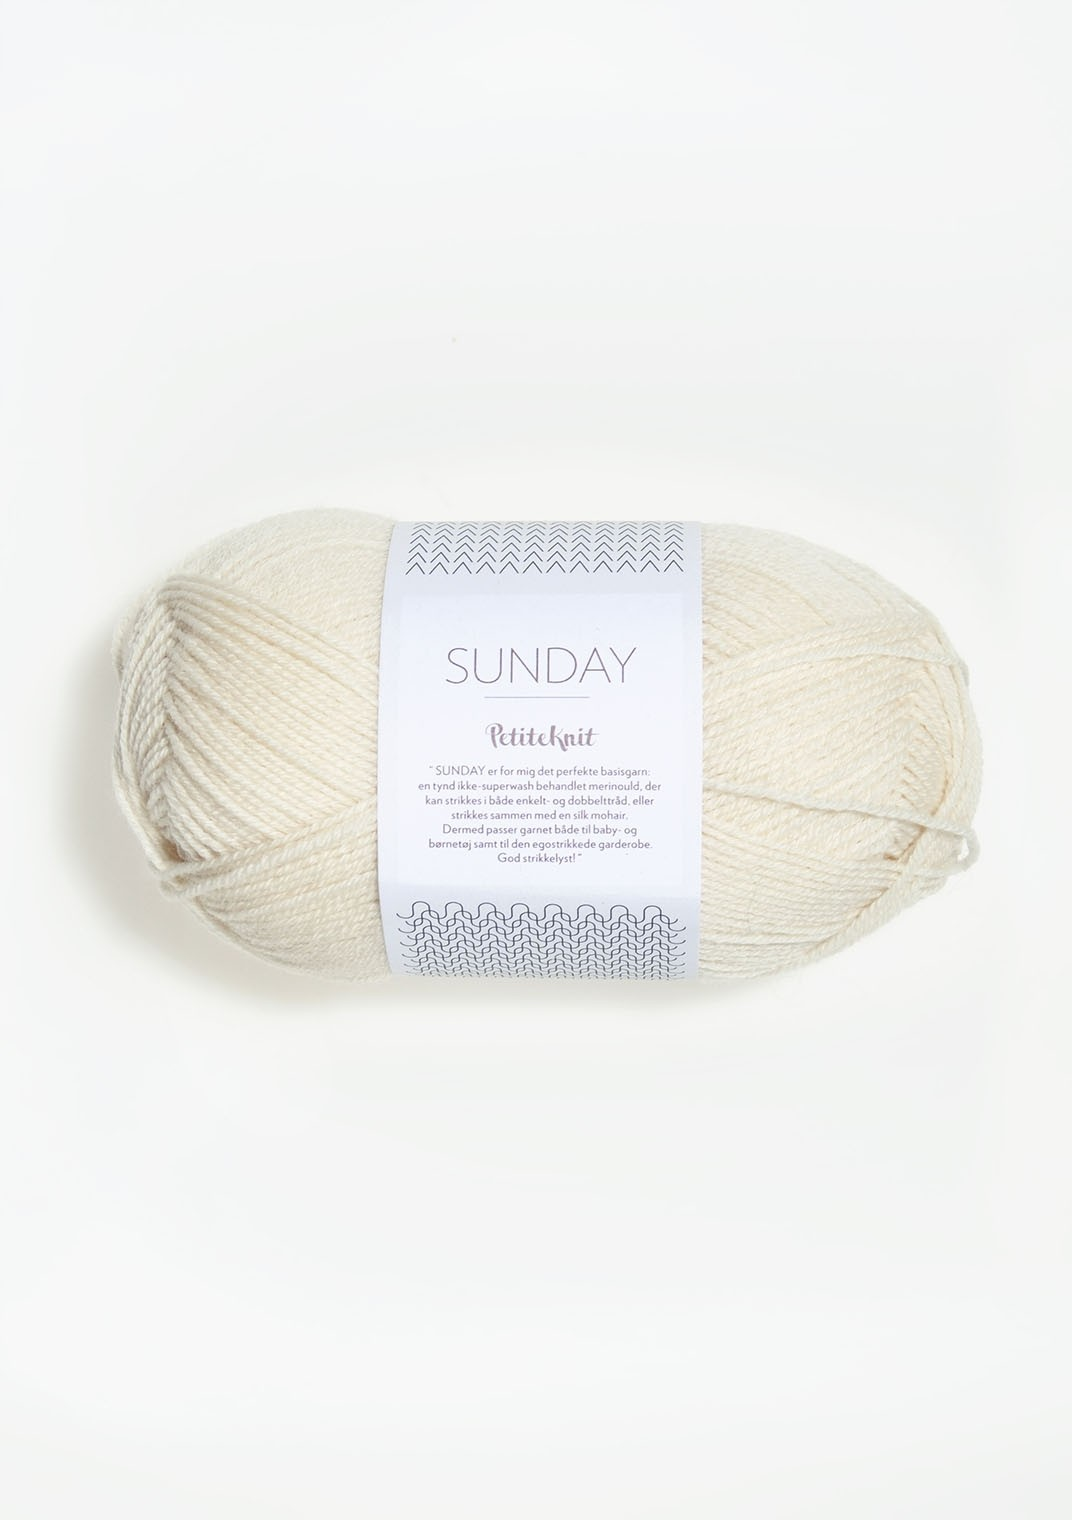 Sandnes 1012 wipped cream Sunday PetiteKnit